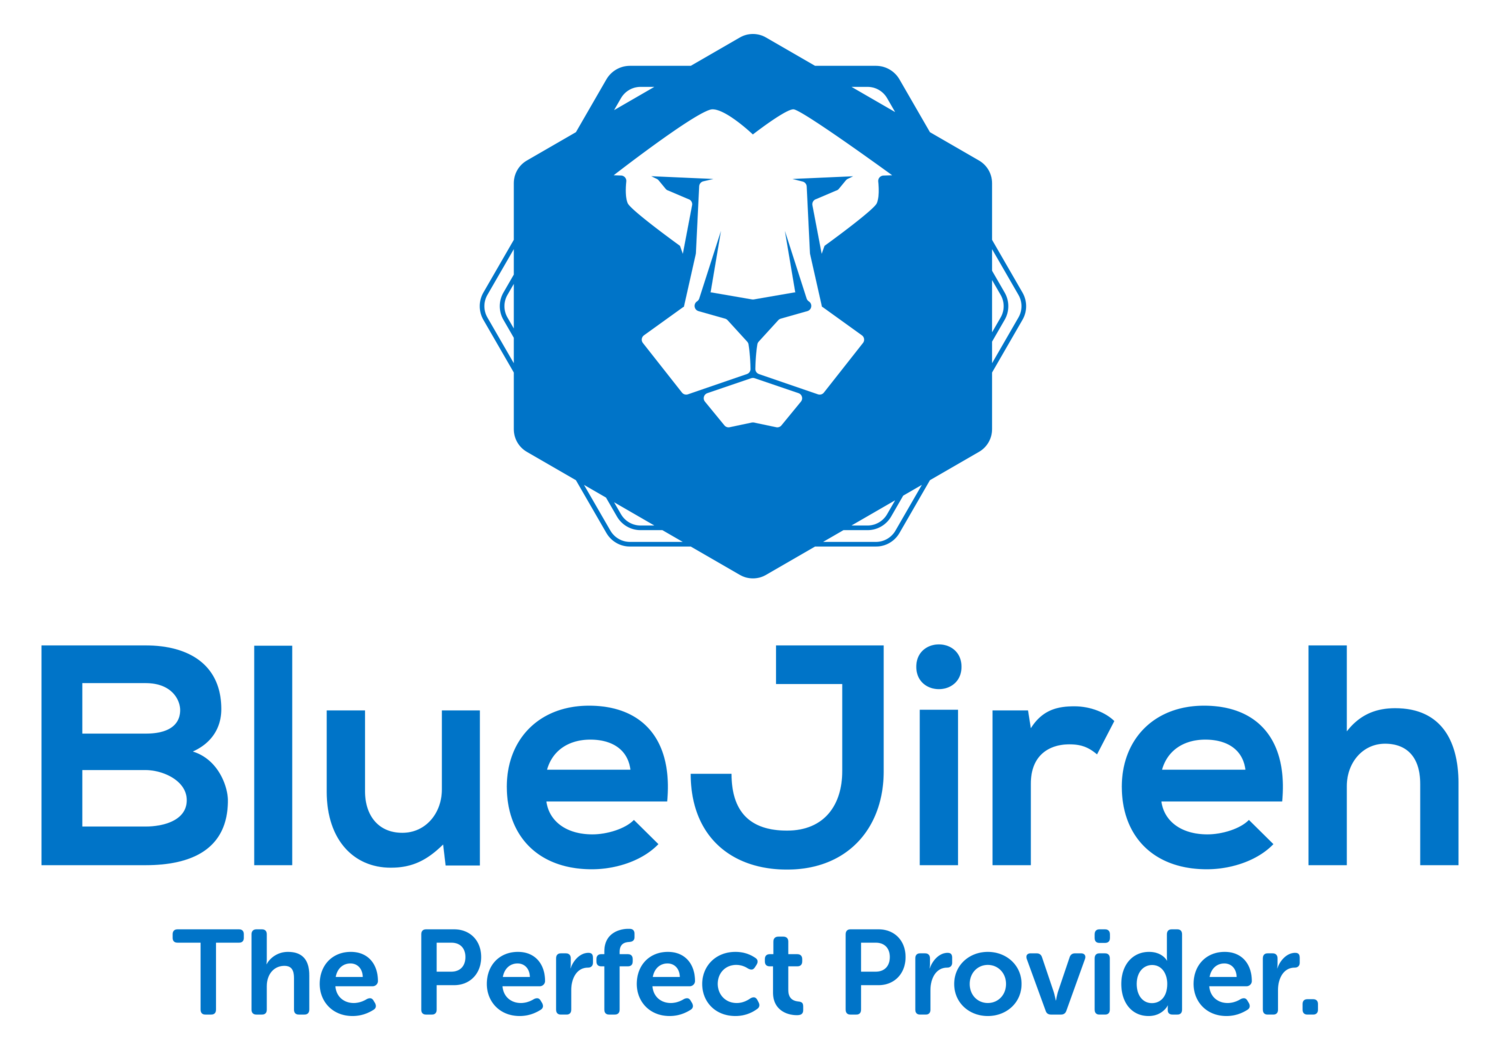 Bluejireh Inc.